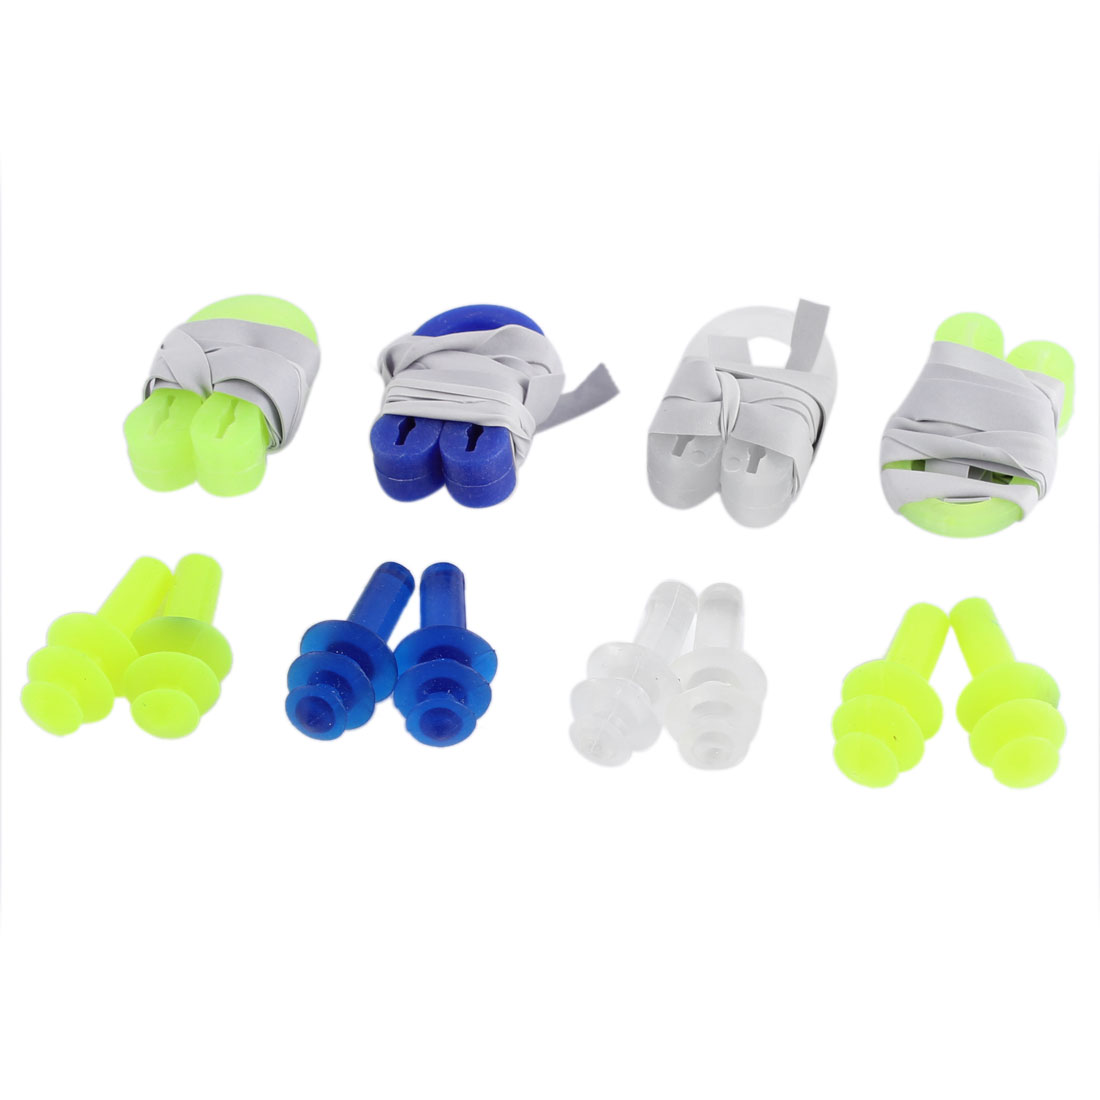 4 Pairs Swimming Guard Tool Silicone Plastic Nose Clip Earplugs Set